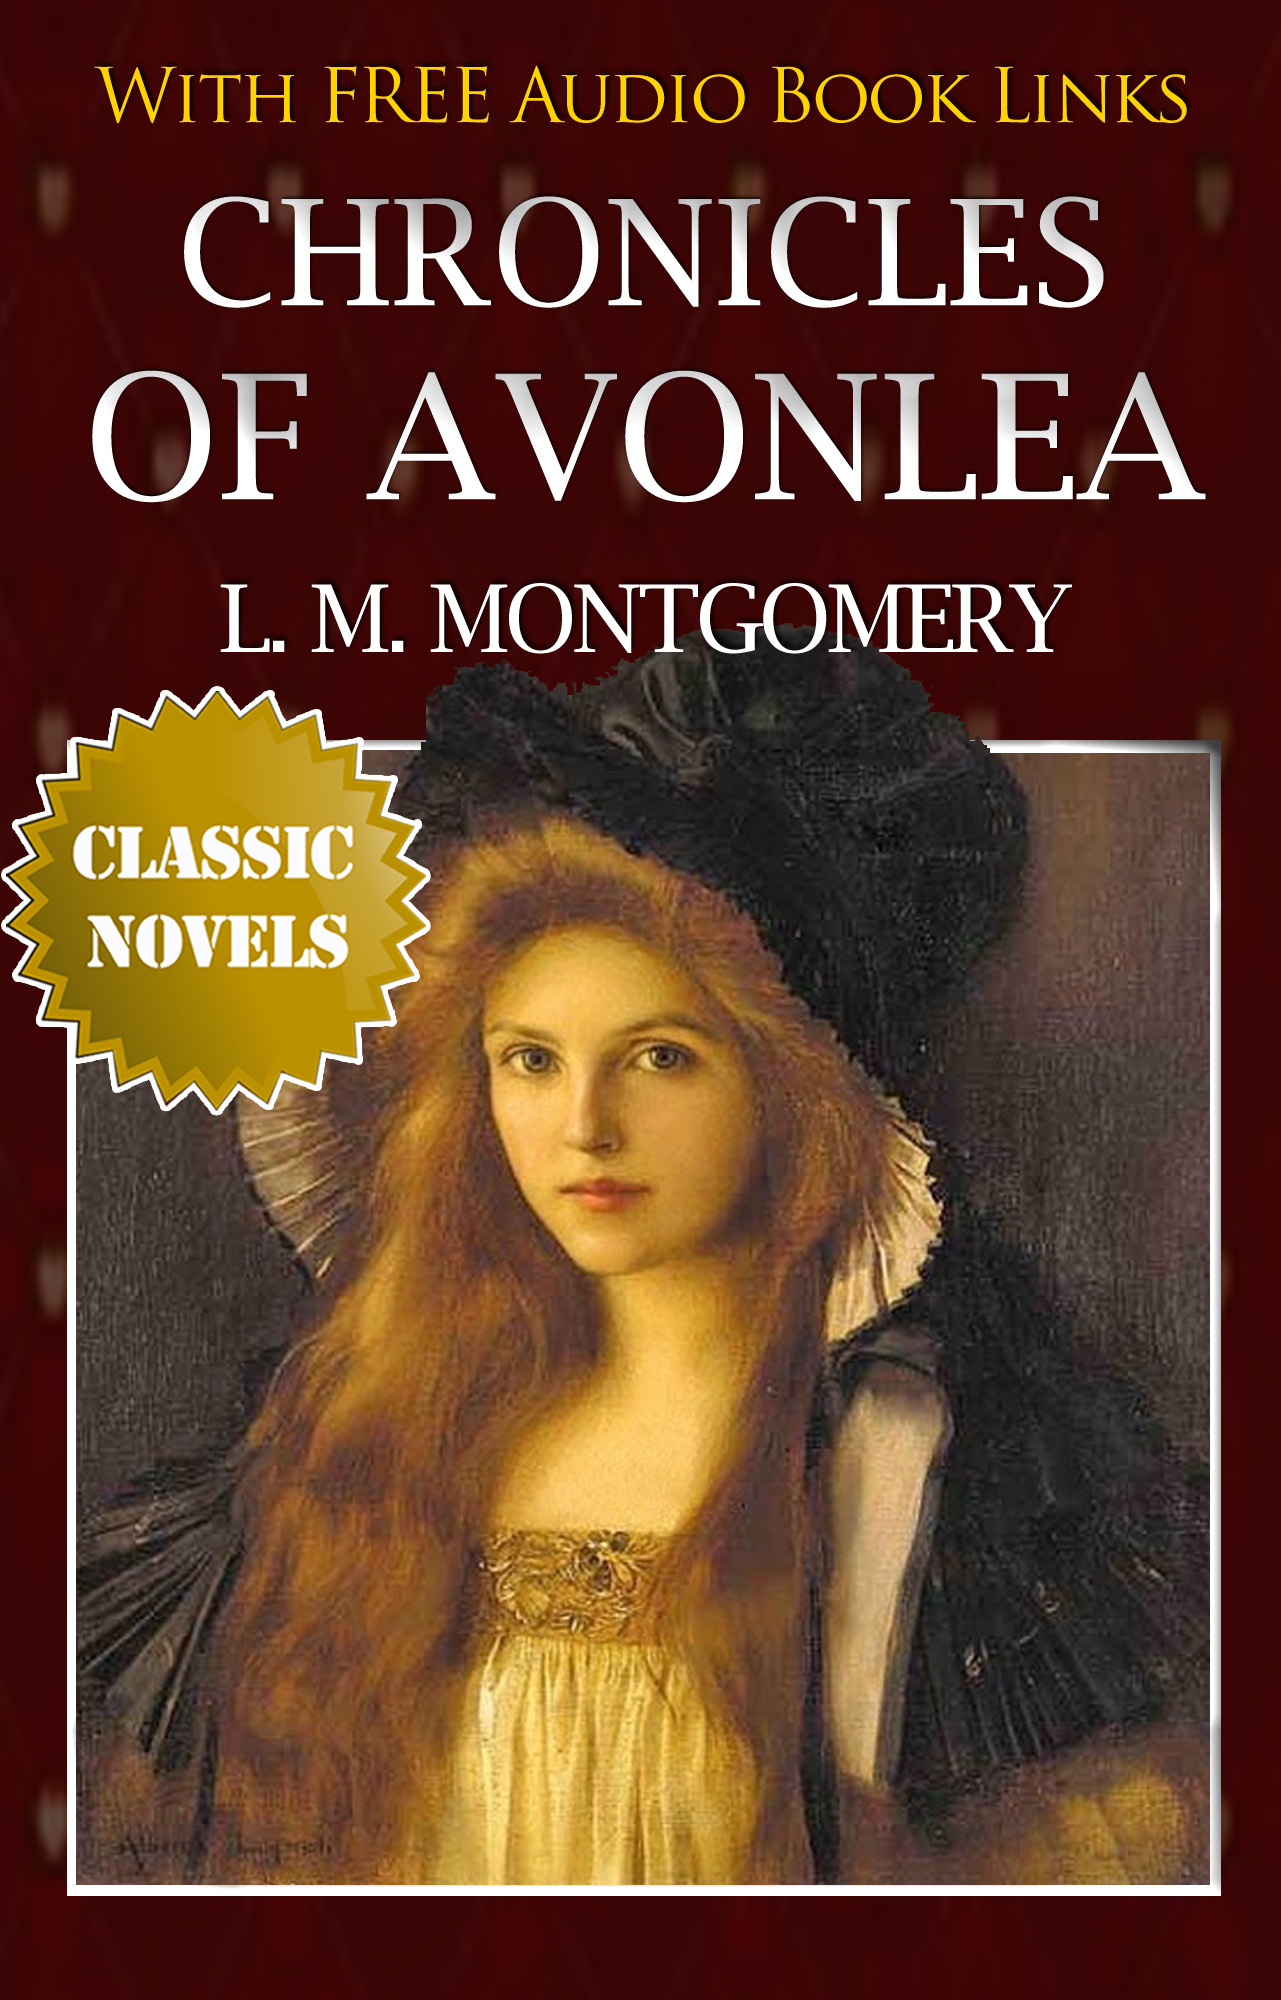 Lucy Maud Montgomery - CHRONICLES OF AVONLEA Classic Novels: New Illustrated [Free Audiobook Links]